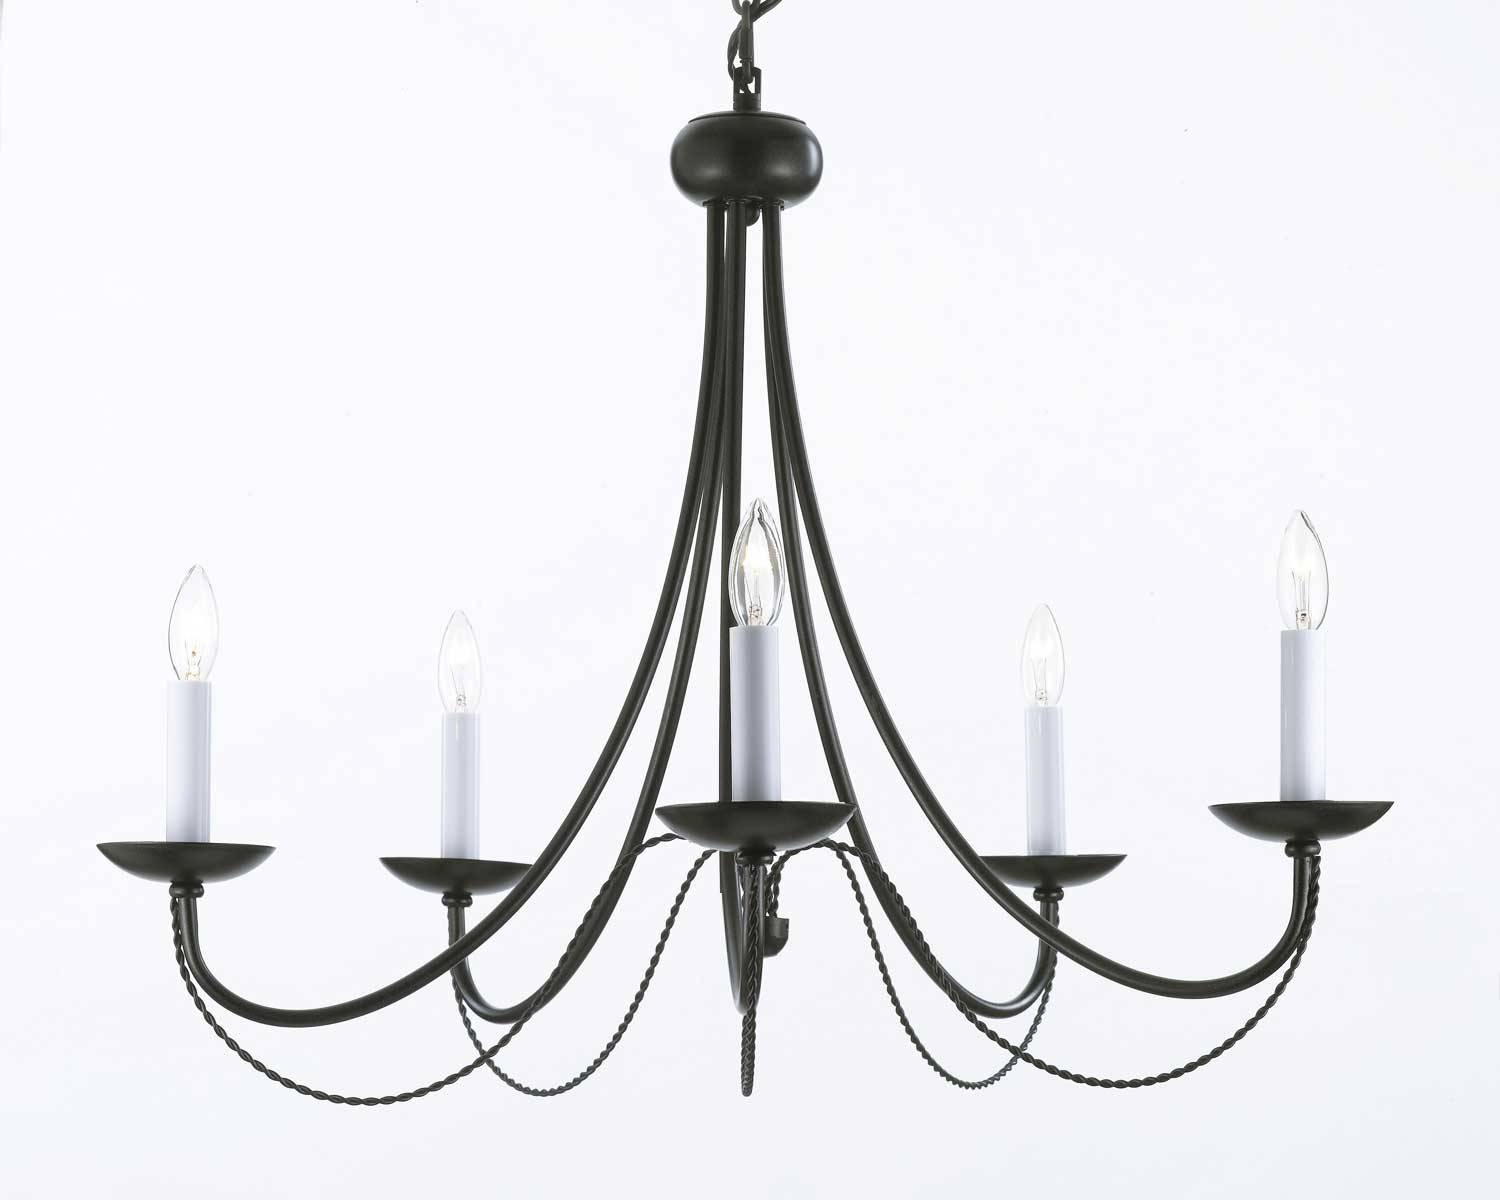 Wrought Iron Chandeliers Australia Design – Home Furniture Ideas with Wrought Iron Pendant Lights Australia (Image 14 of 15)